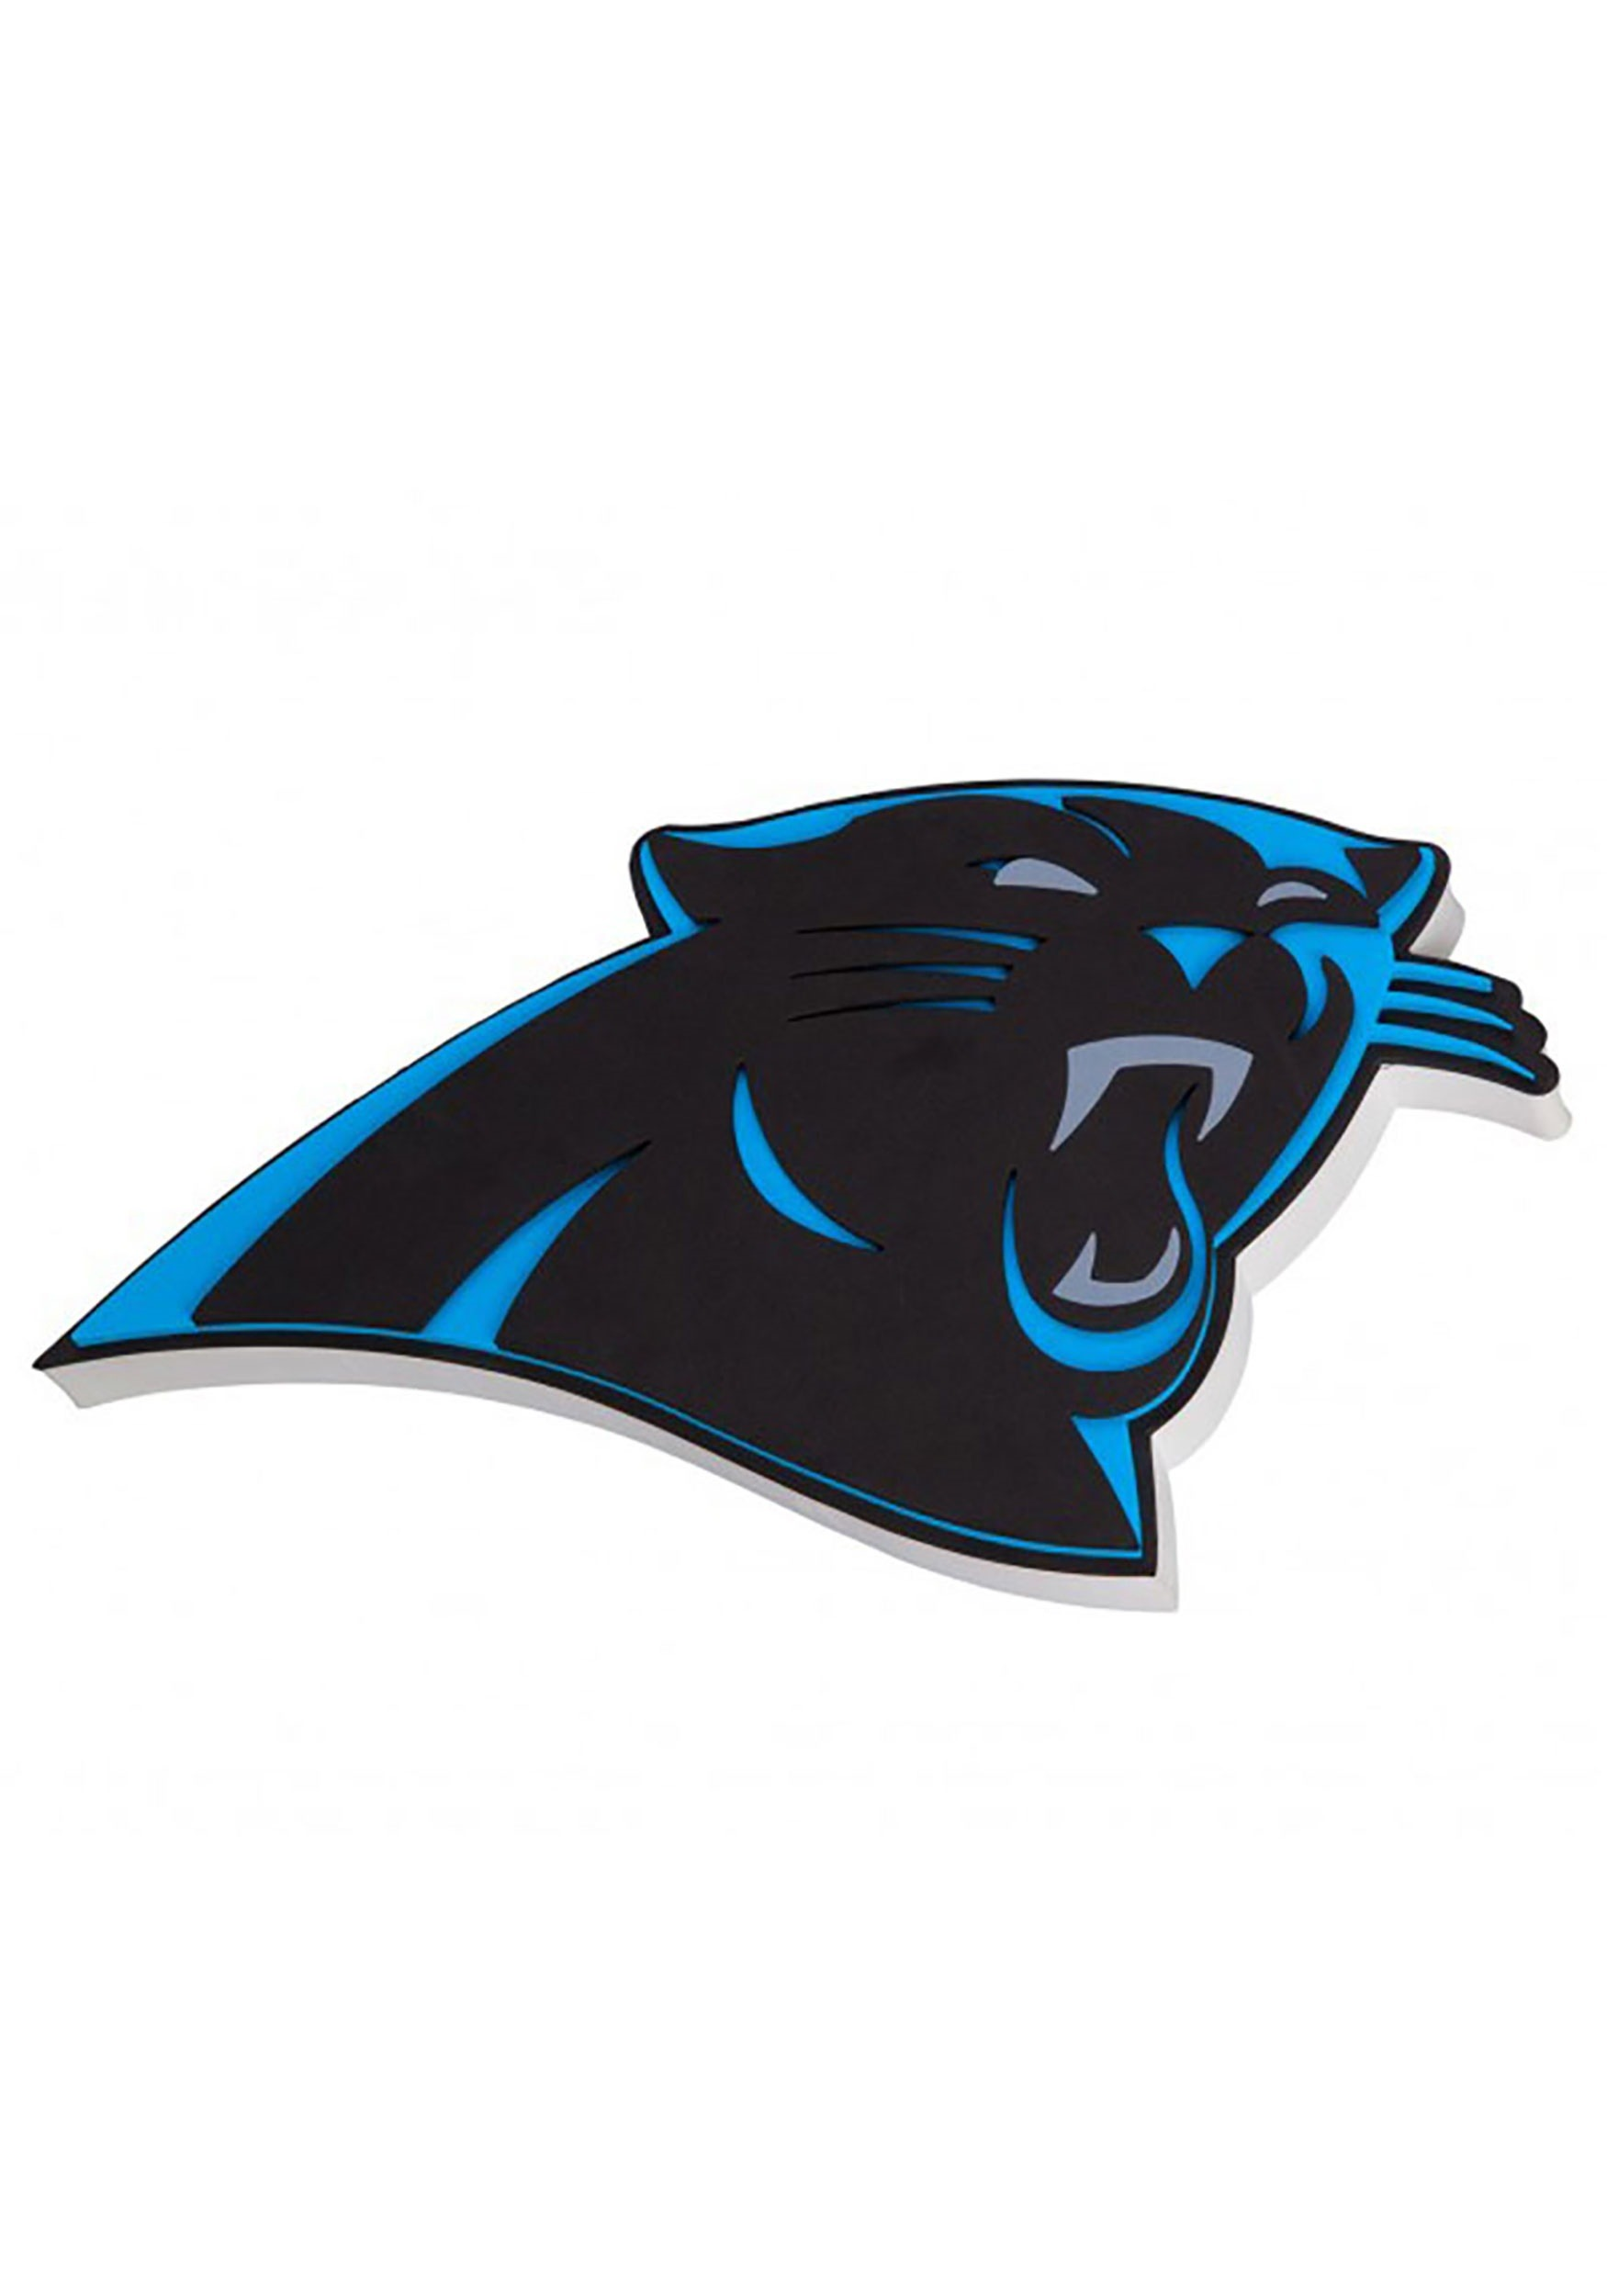 NFL Carolina Panthers Logo Foam Sign.